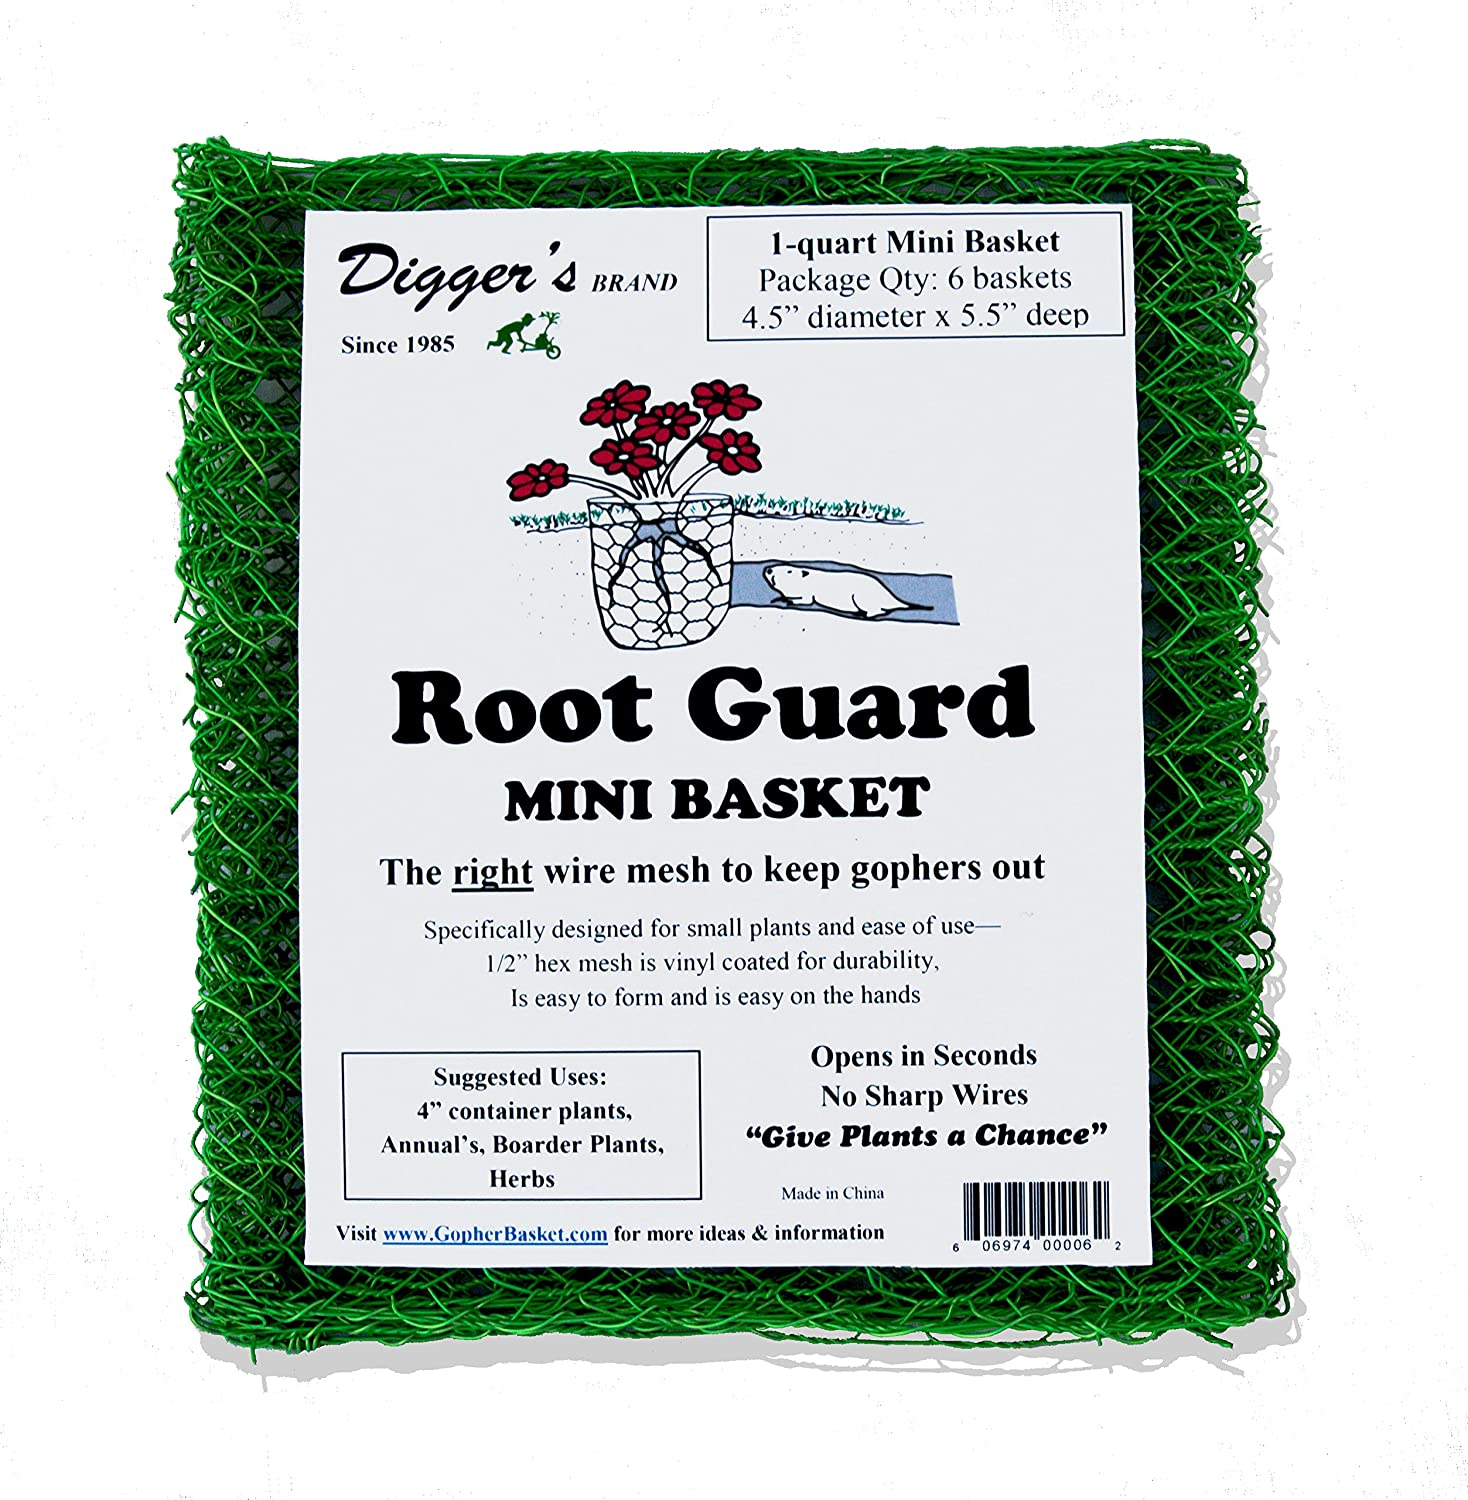 Digger's Mini Root Guard Heavy Duty Gopher Wire Baskets (Bulk Pack of 24, 4 Packs Containing 6 Baskets Each) – Effective Gopher Repellent, Easy to Form Plant Cloche